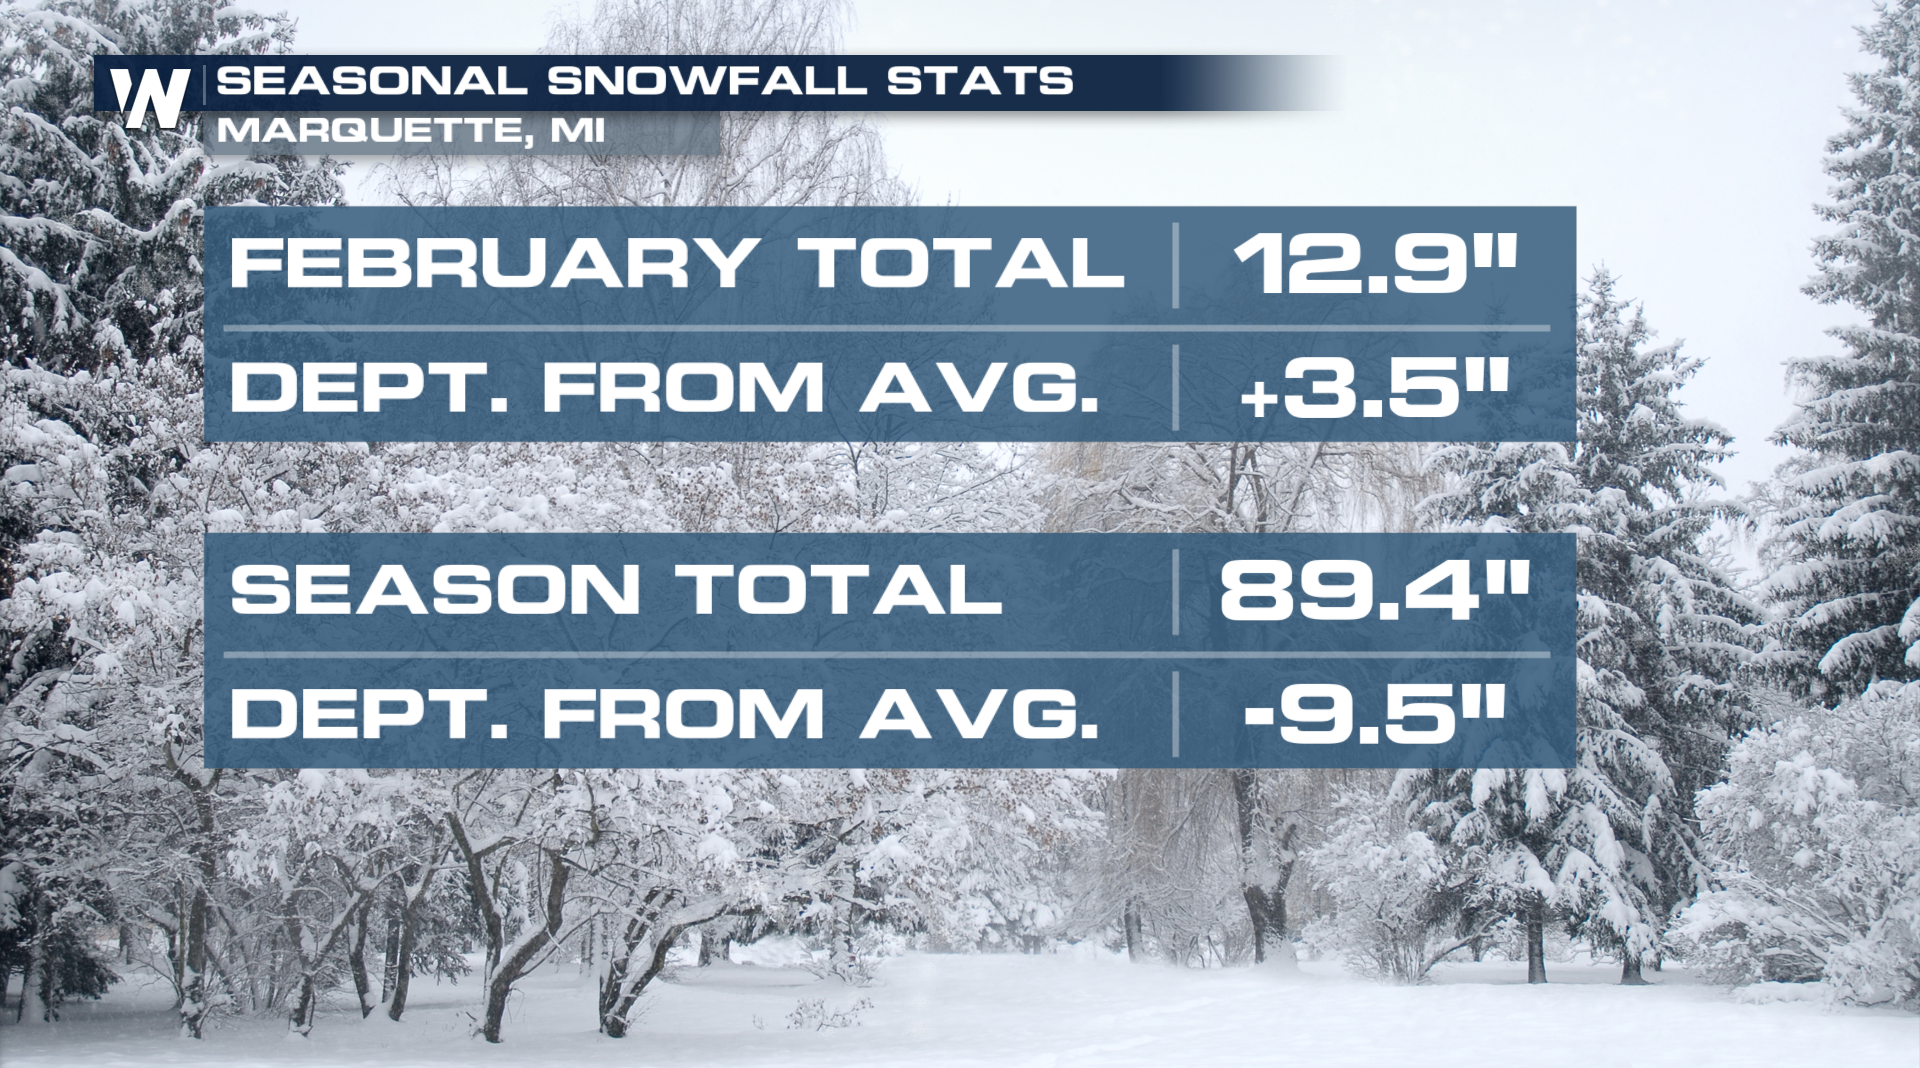 Where do we stand with snowfall so far this season?